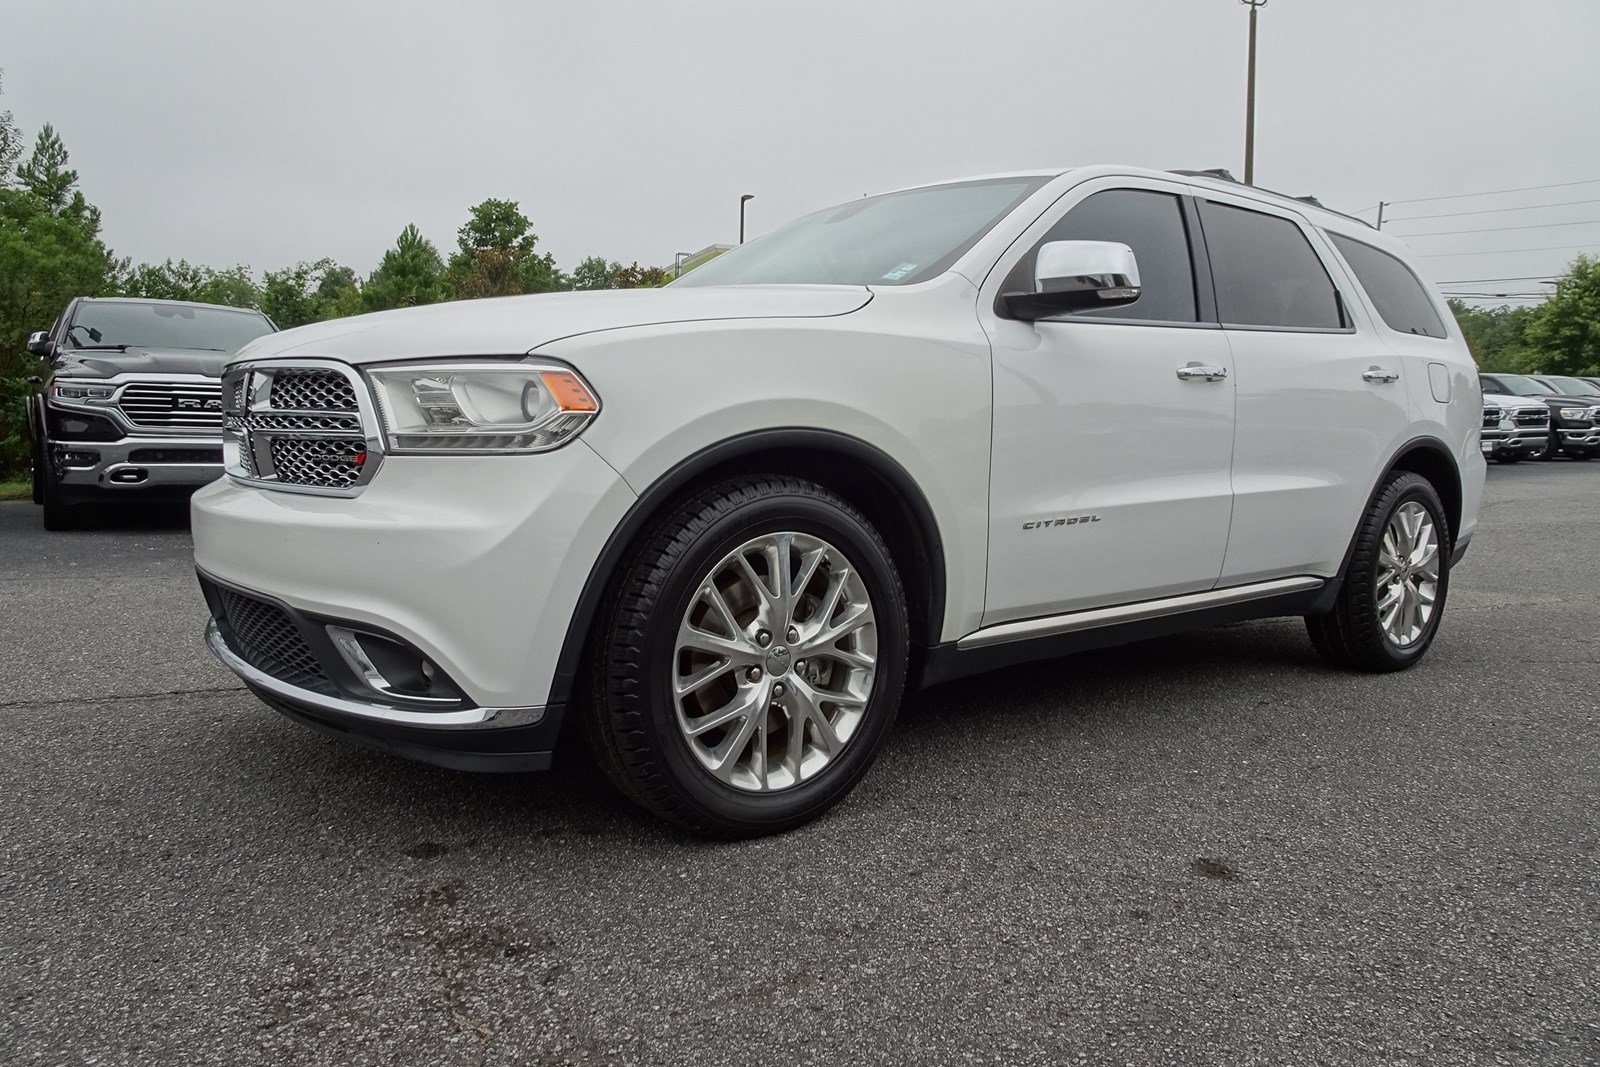 Used 2014 Dodge Durango For Sale at Countryside Chrysler